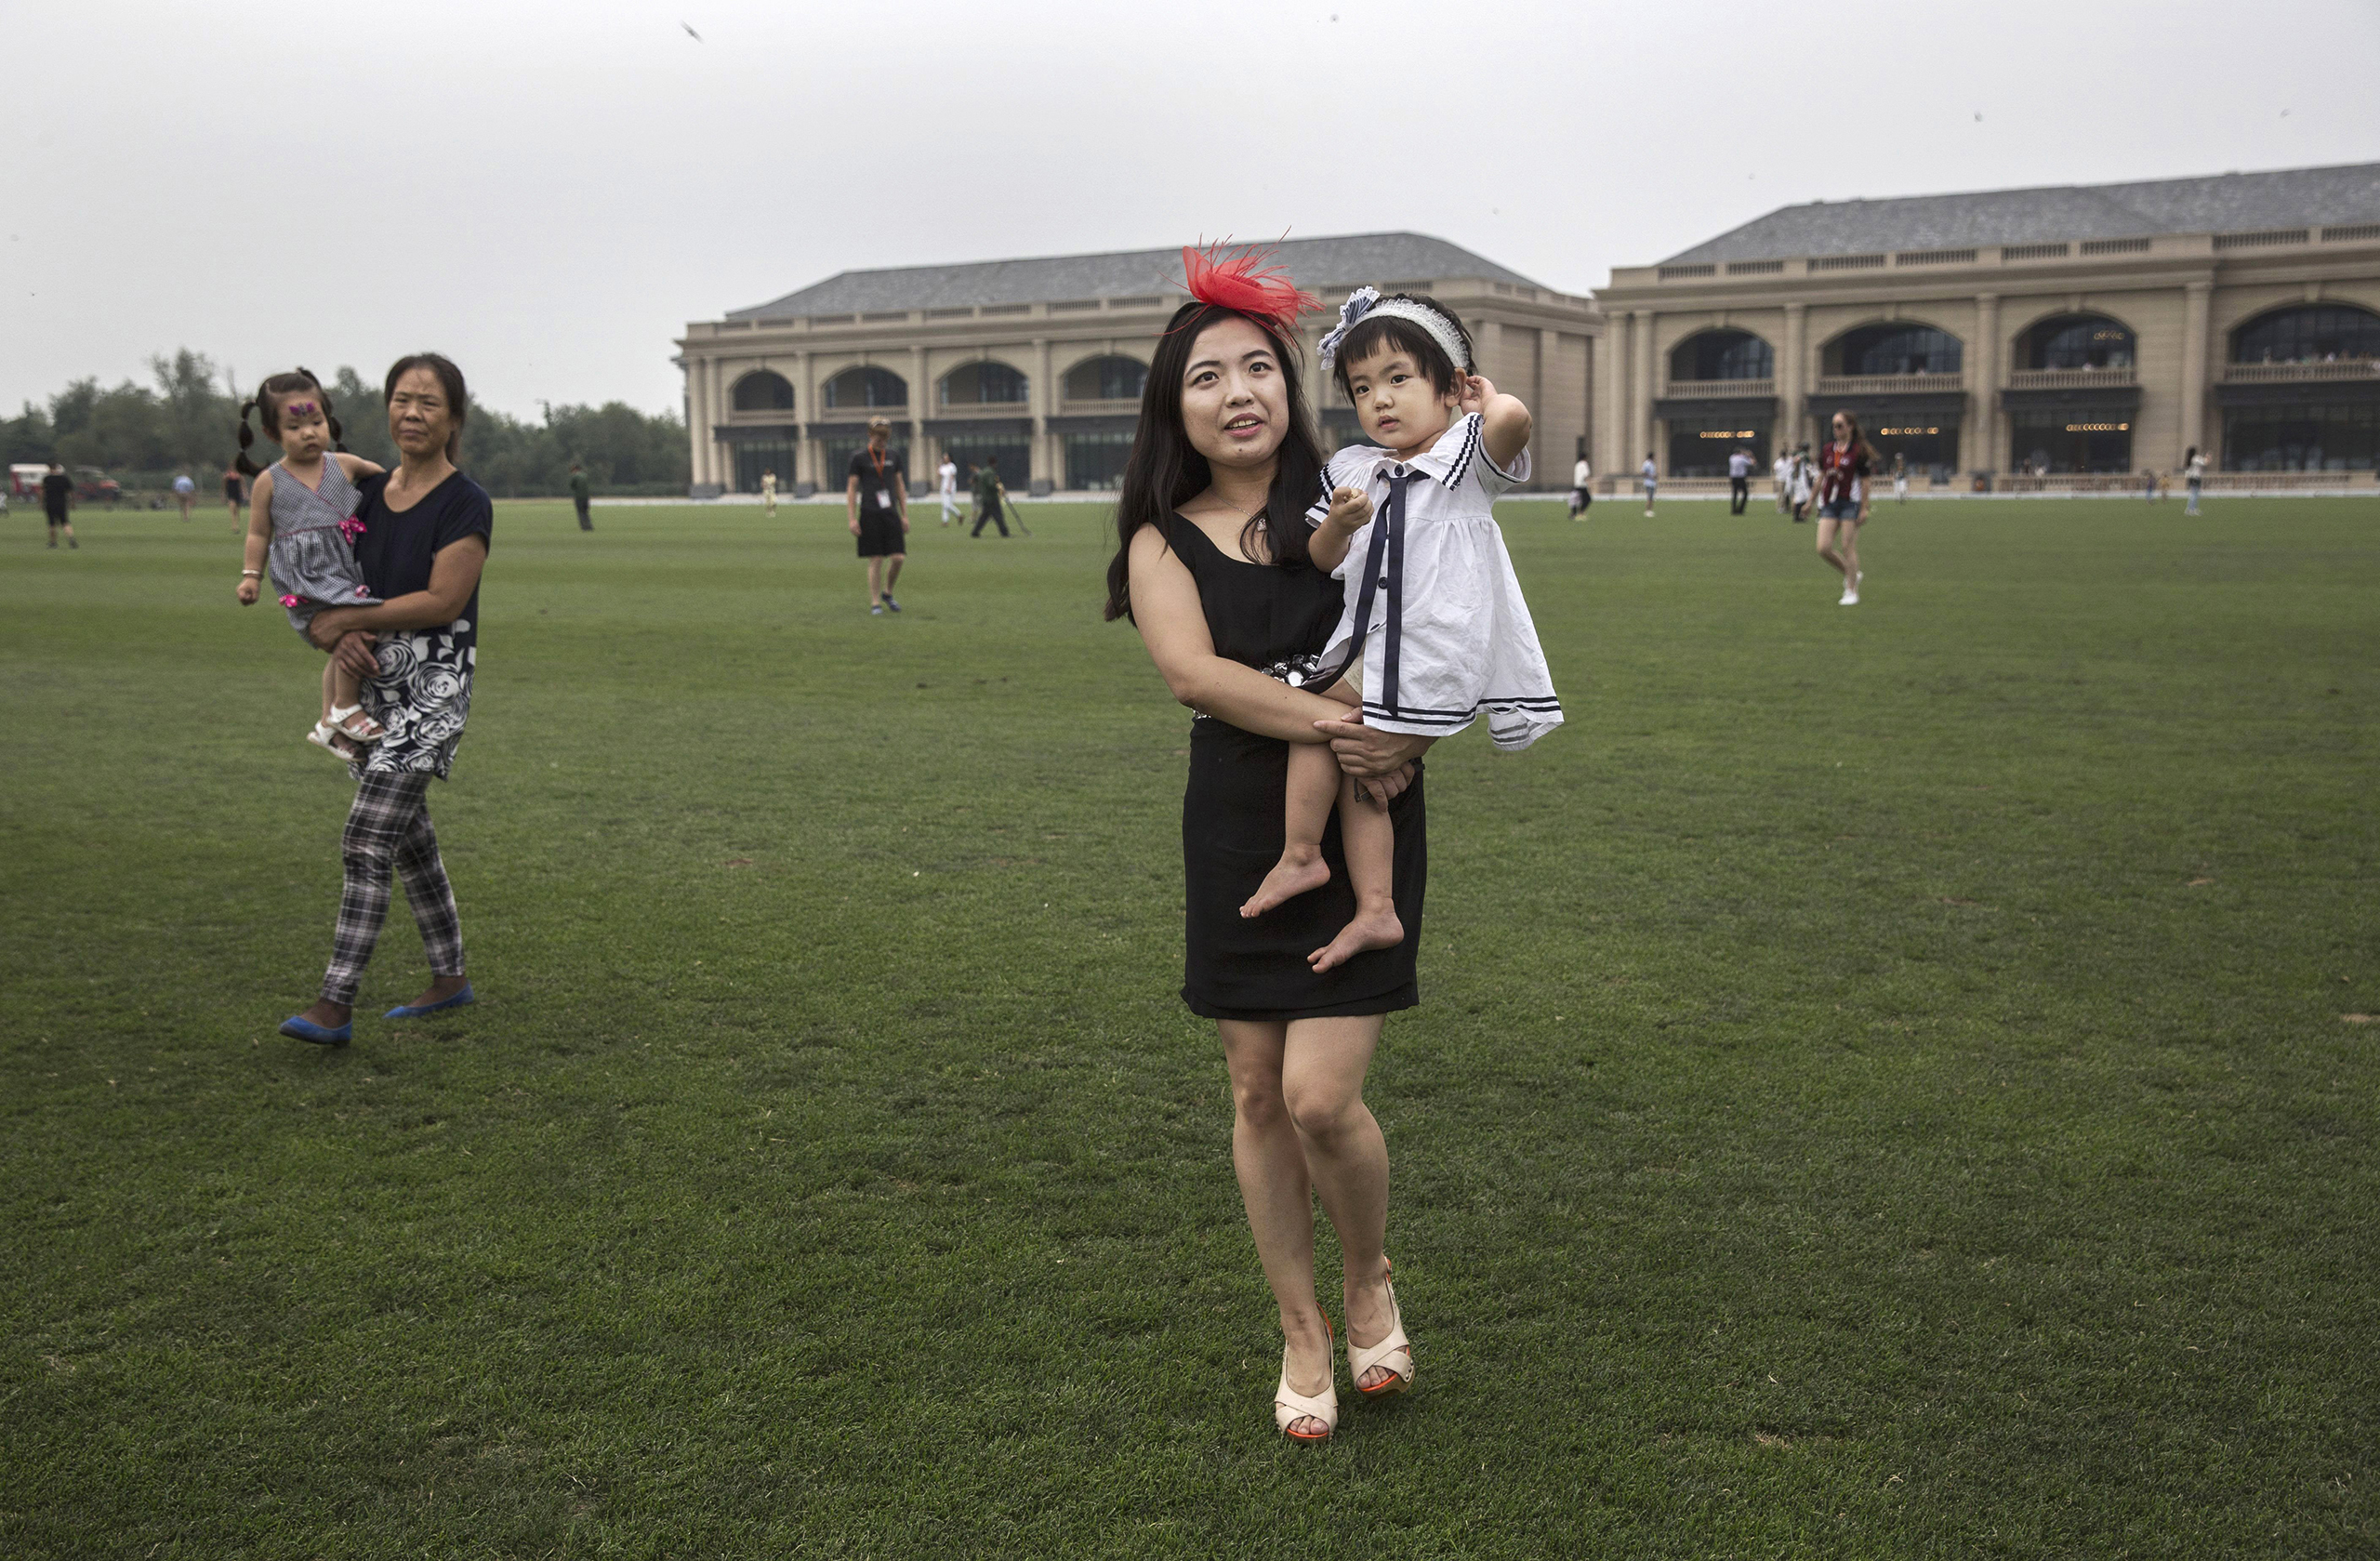 A woman walks across the field with her children during a break in an intervarsity match at the Tianjin Goldin Metropolitan Polo Club in Tianjin, China, on July 16, 2016.